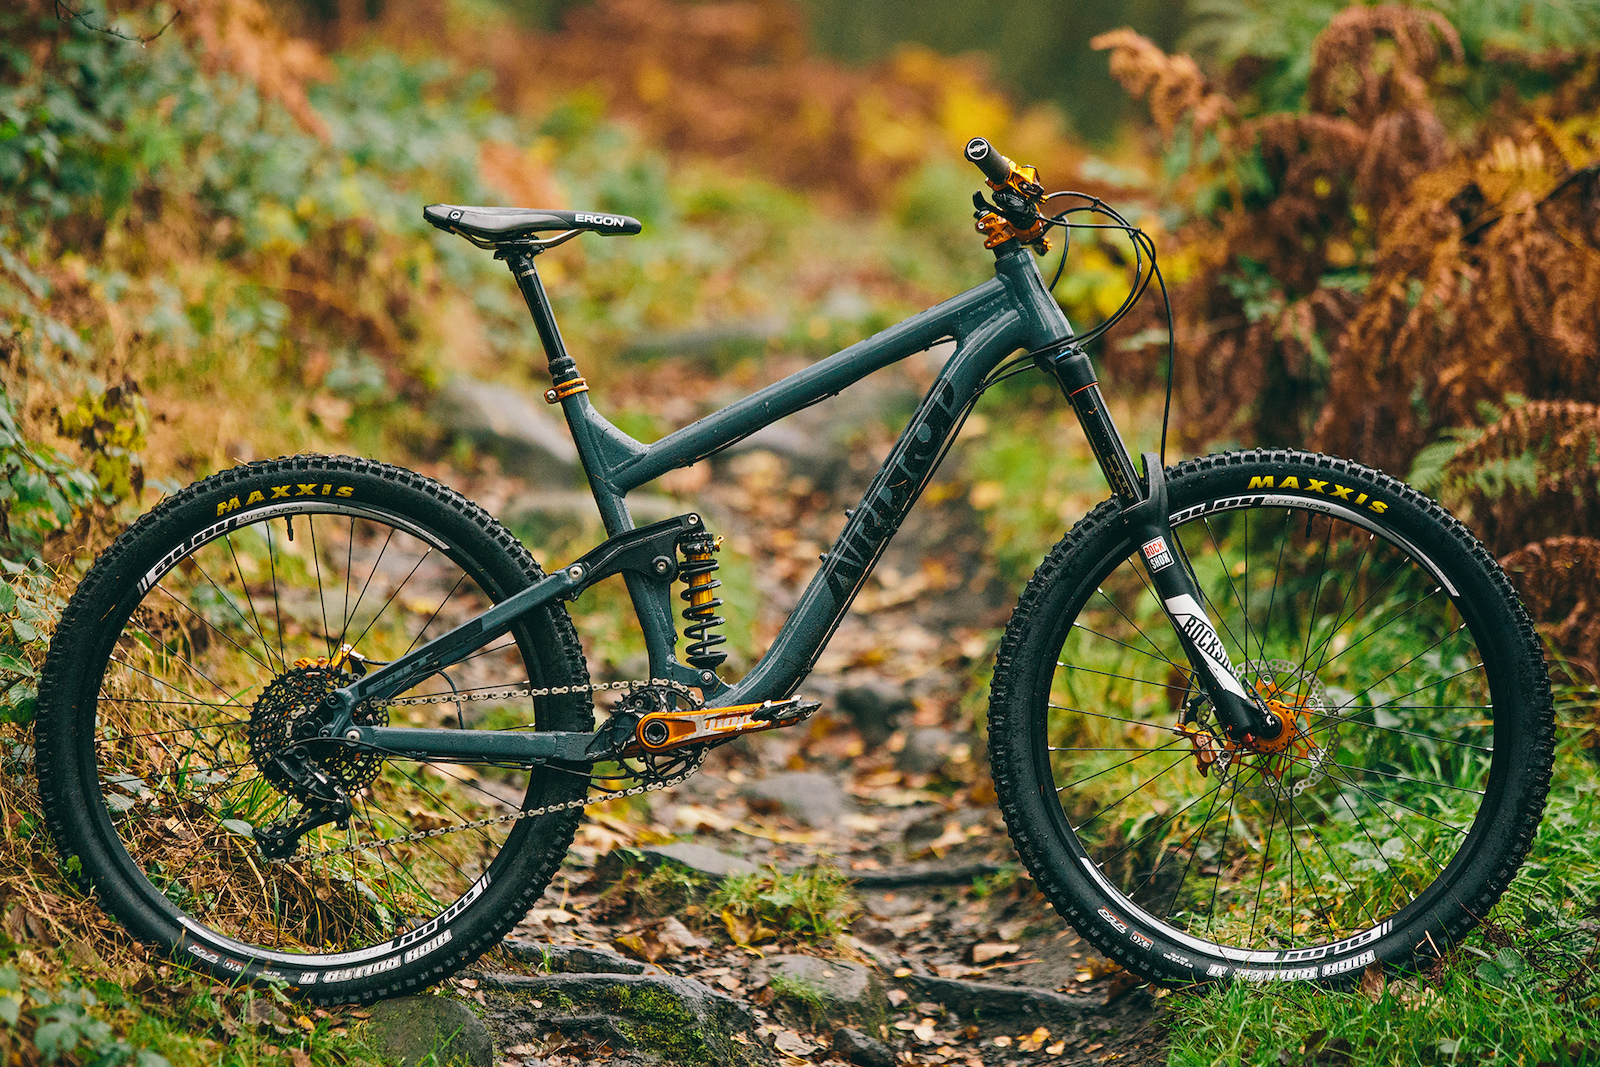 The bike we built for the Golden Hour video. An Airdrop Edit v1 frame in greay with black decals. Cane Creek DBcoil IL shock with Valt spring Hopetech components throughout Rockshox Pike RCT3 forks and SRAM GX 1x11 groupset